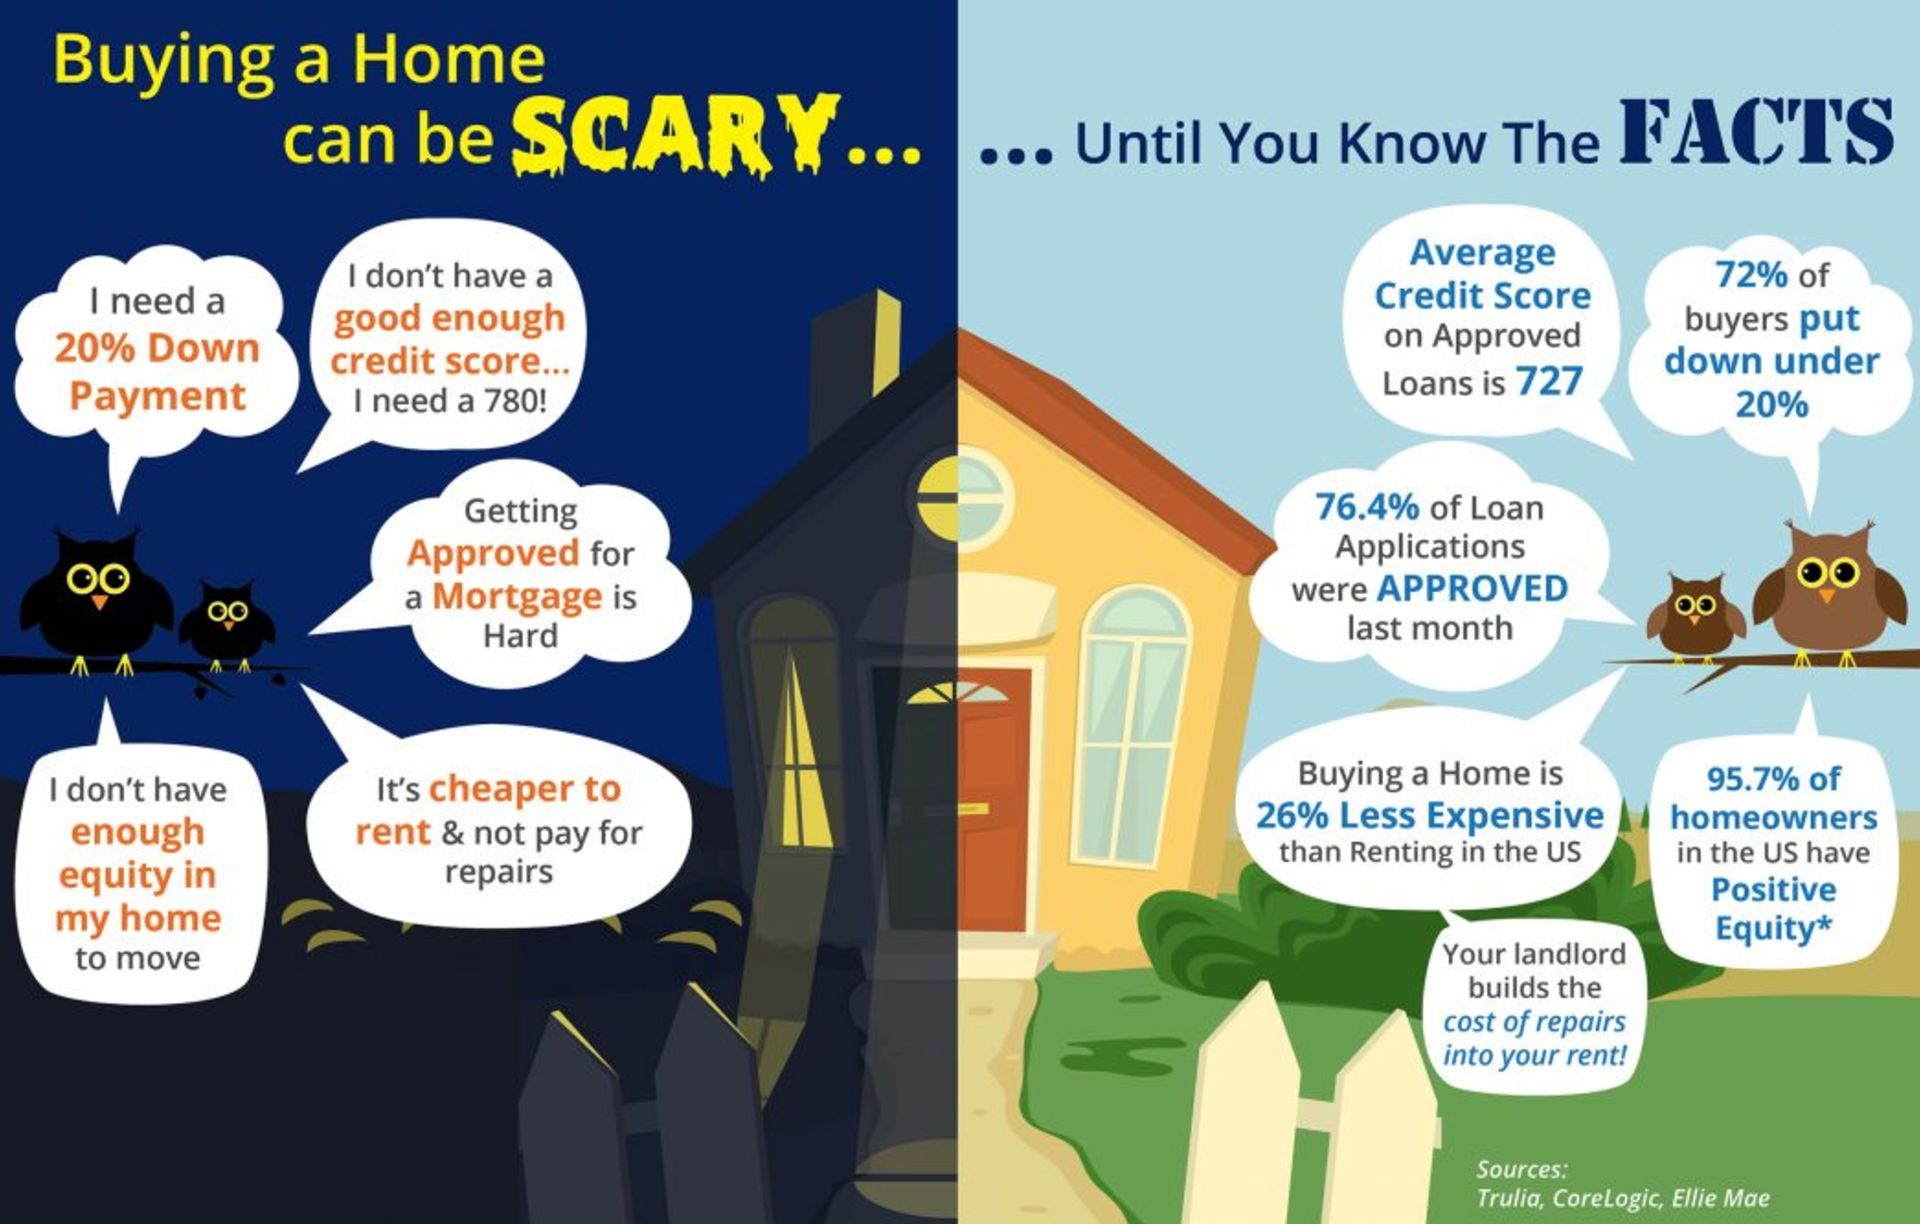 Buying a Home Can Be Scary Until You Know the Facts!